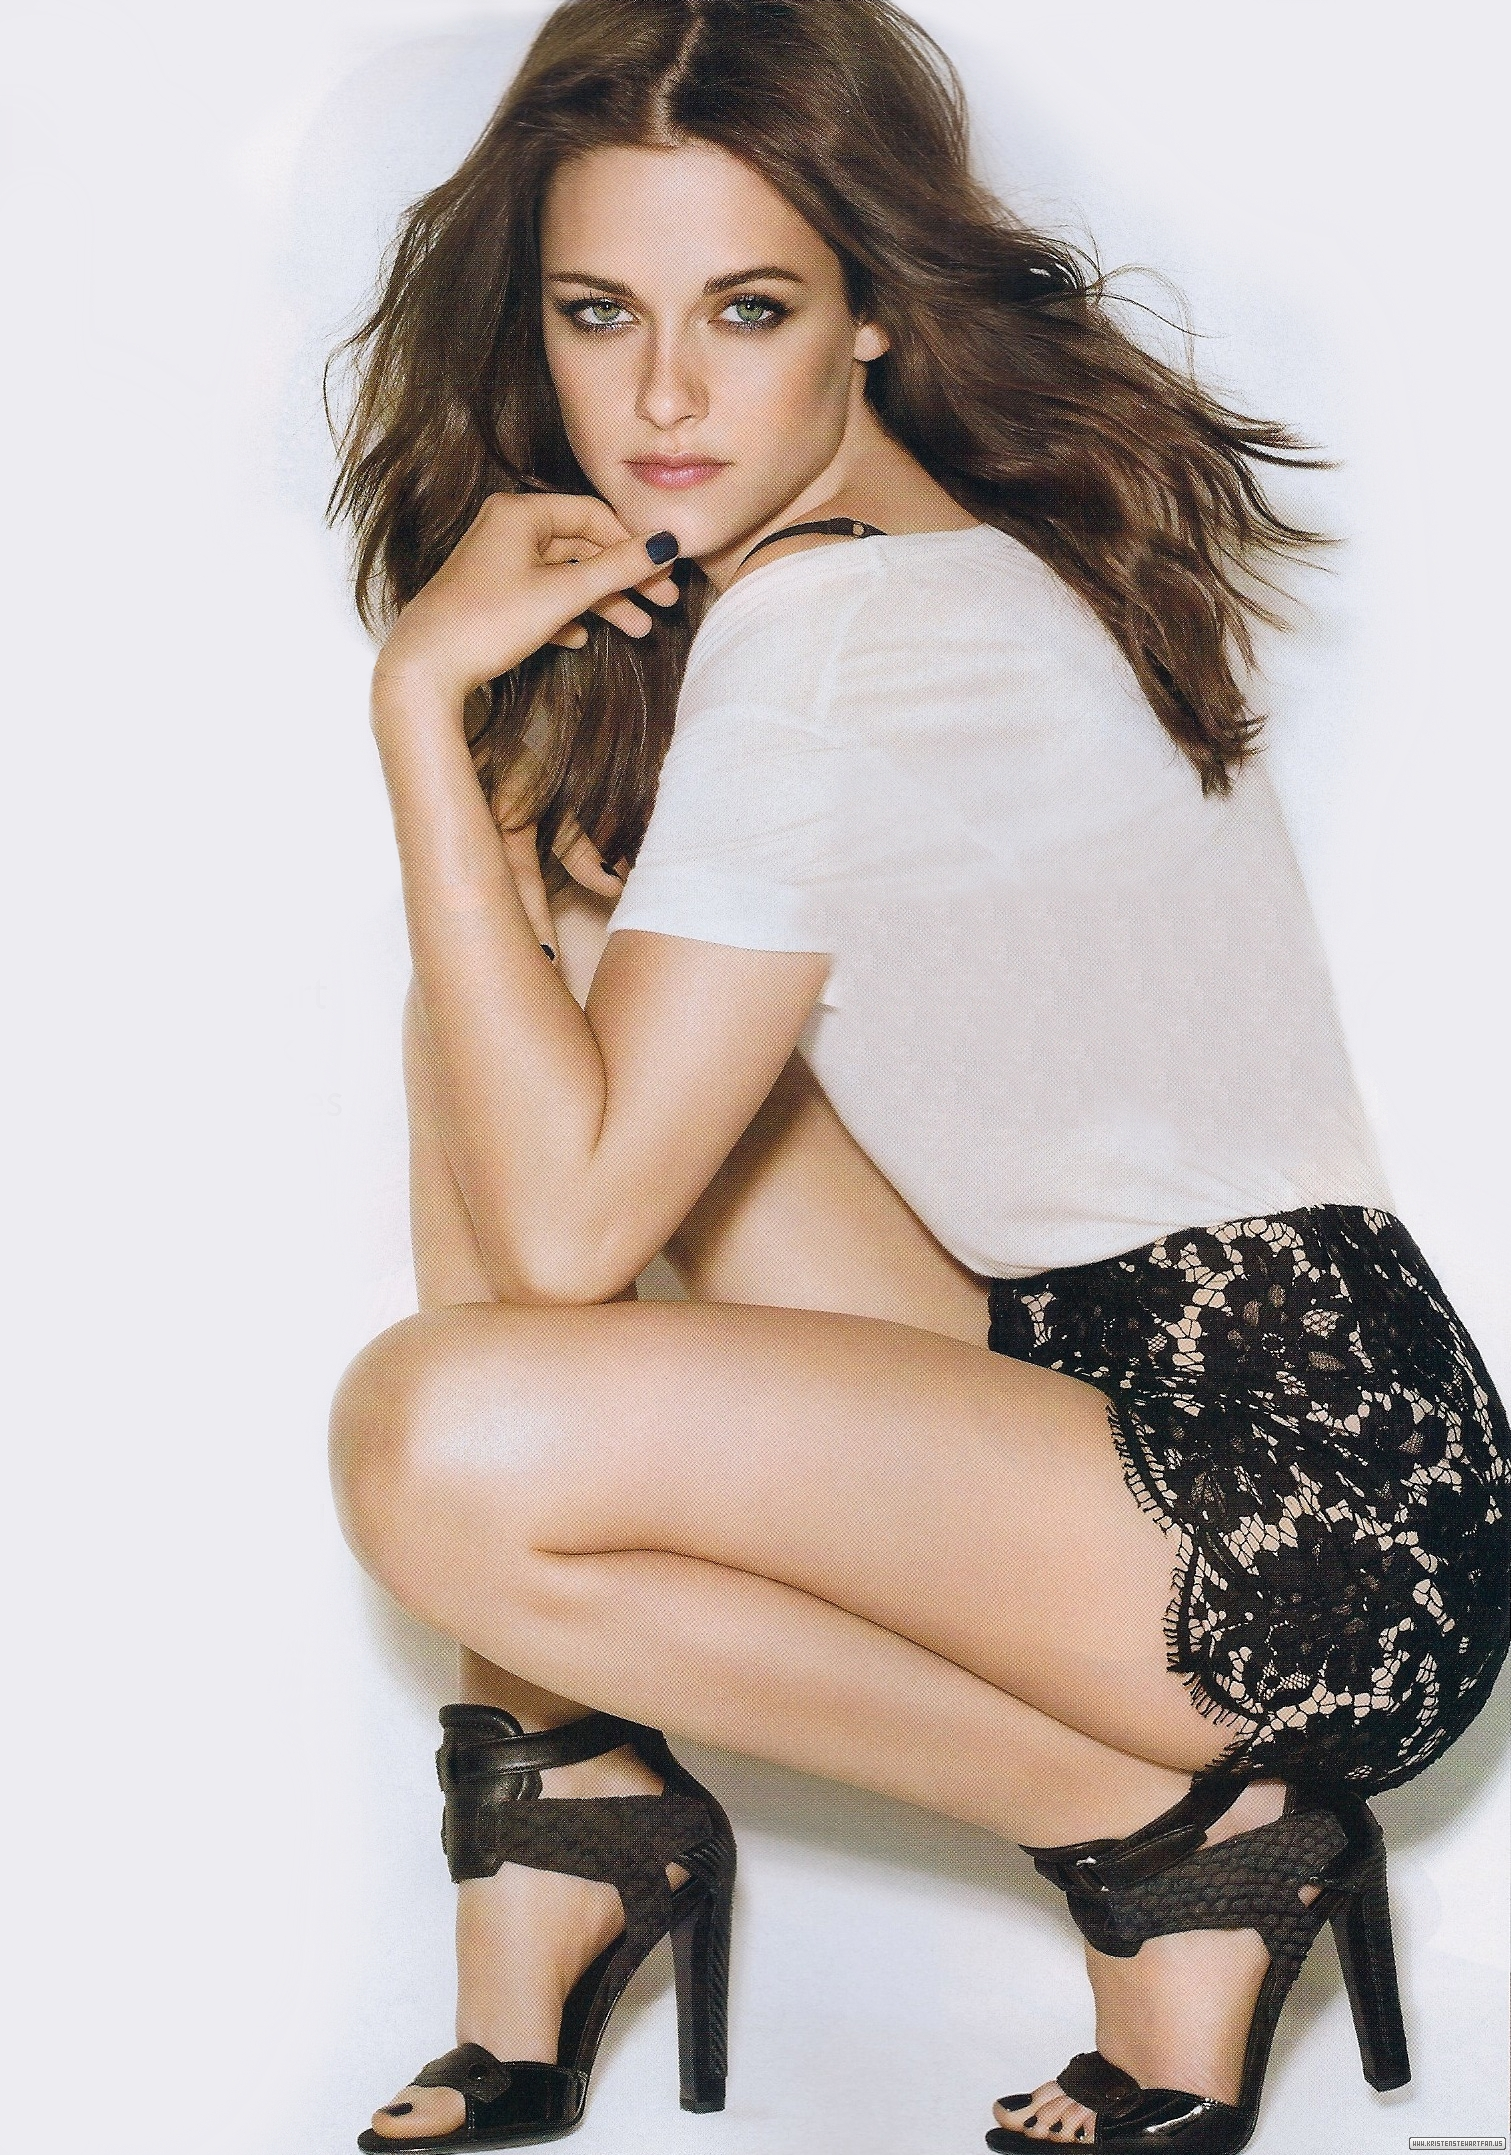 Glamour Photoshoot - 2011. - Kristen Stewart Photo (25735849) - Fanpop